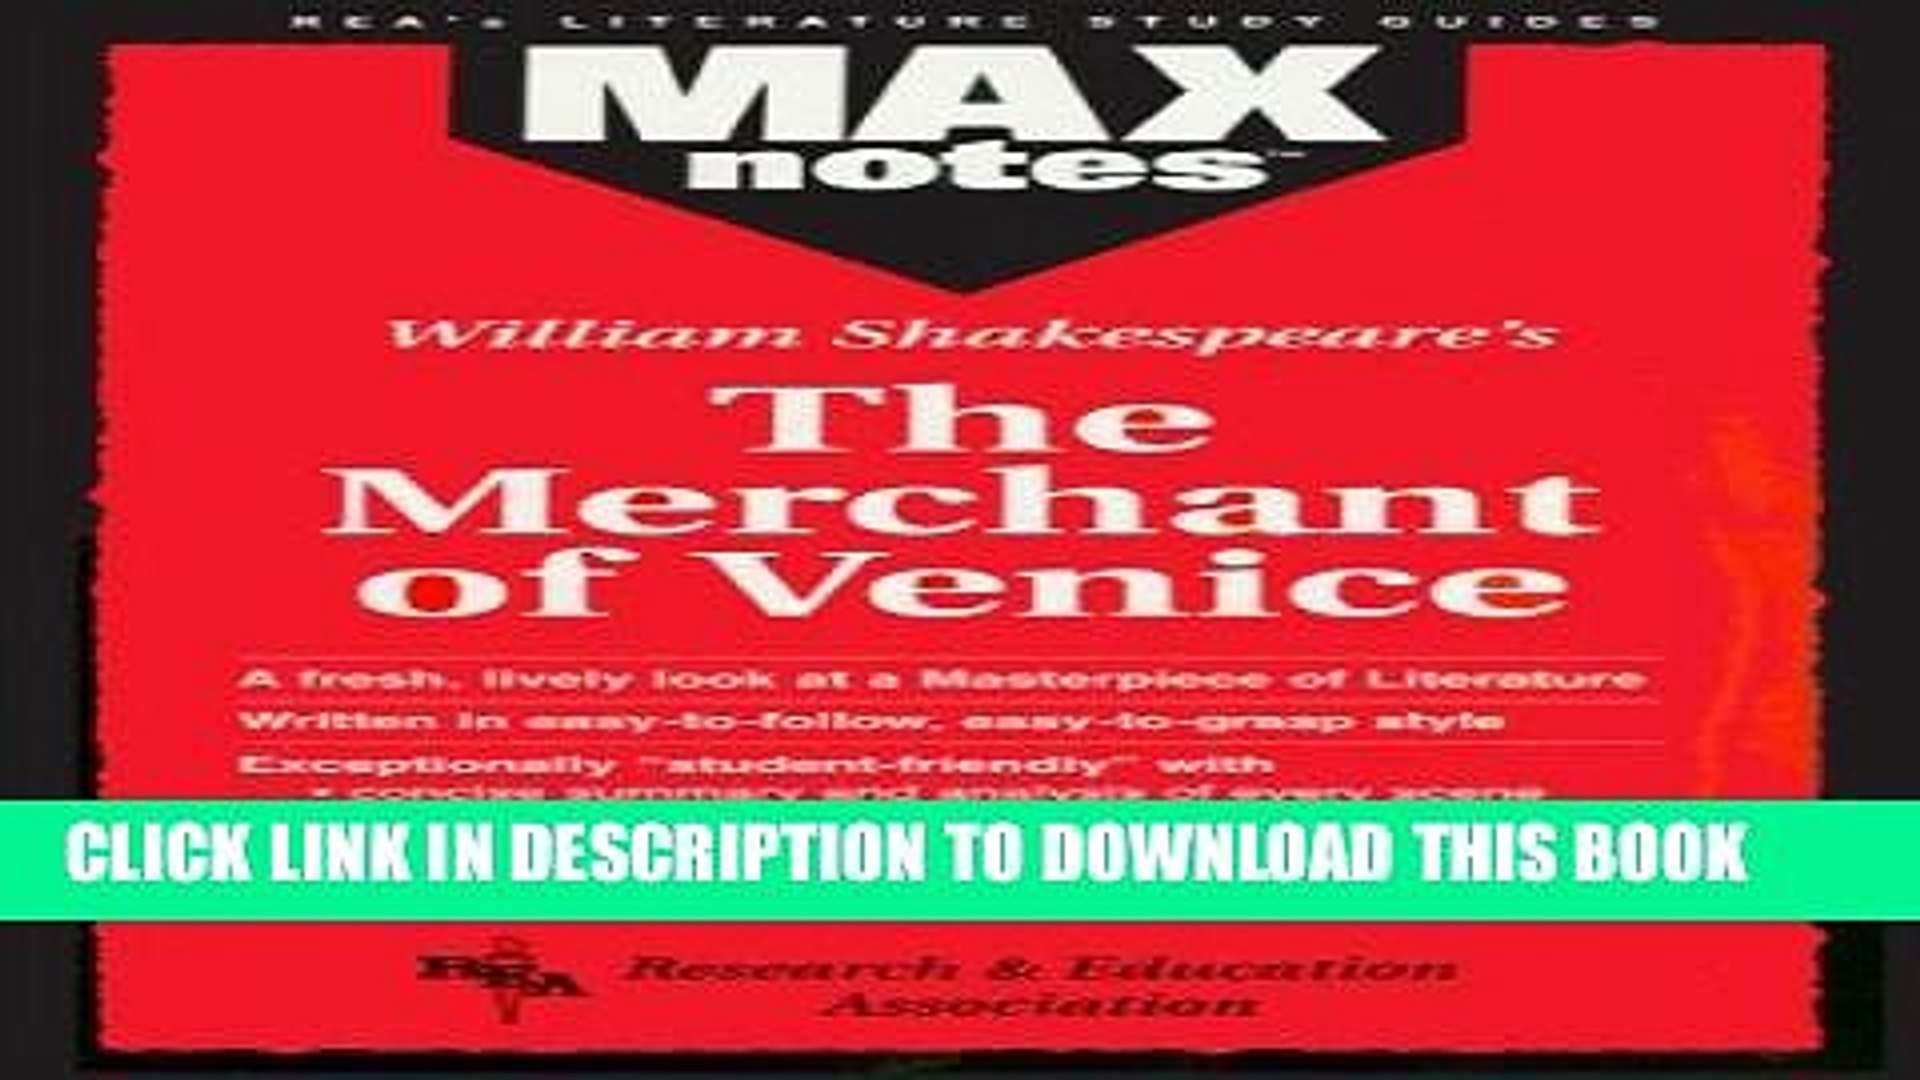 Collection Book Merchant of Venice, The  (MAXNotes Literature Guides)